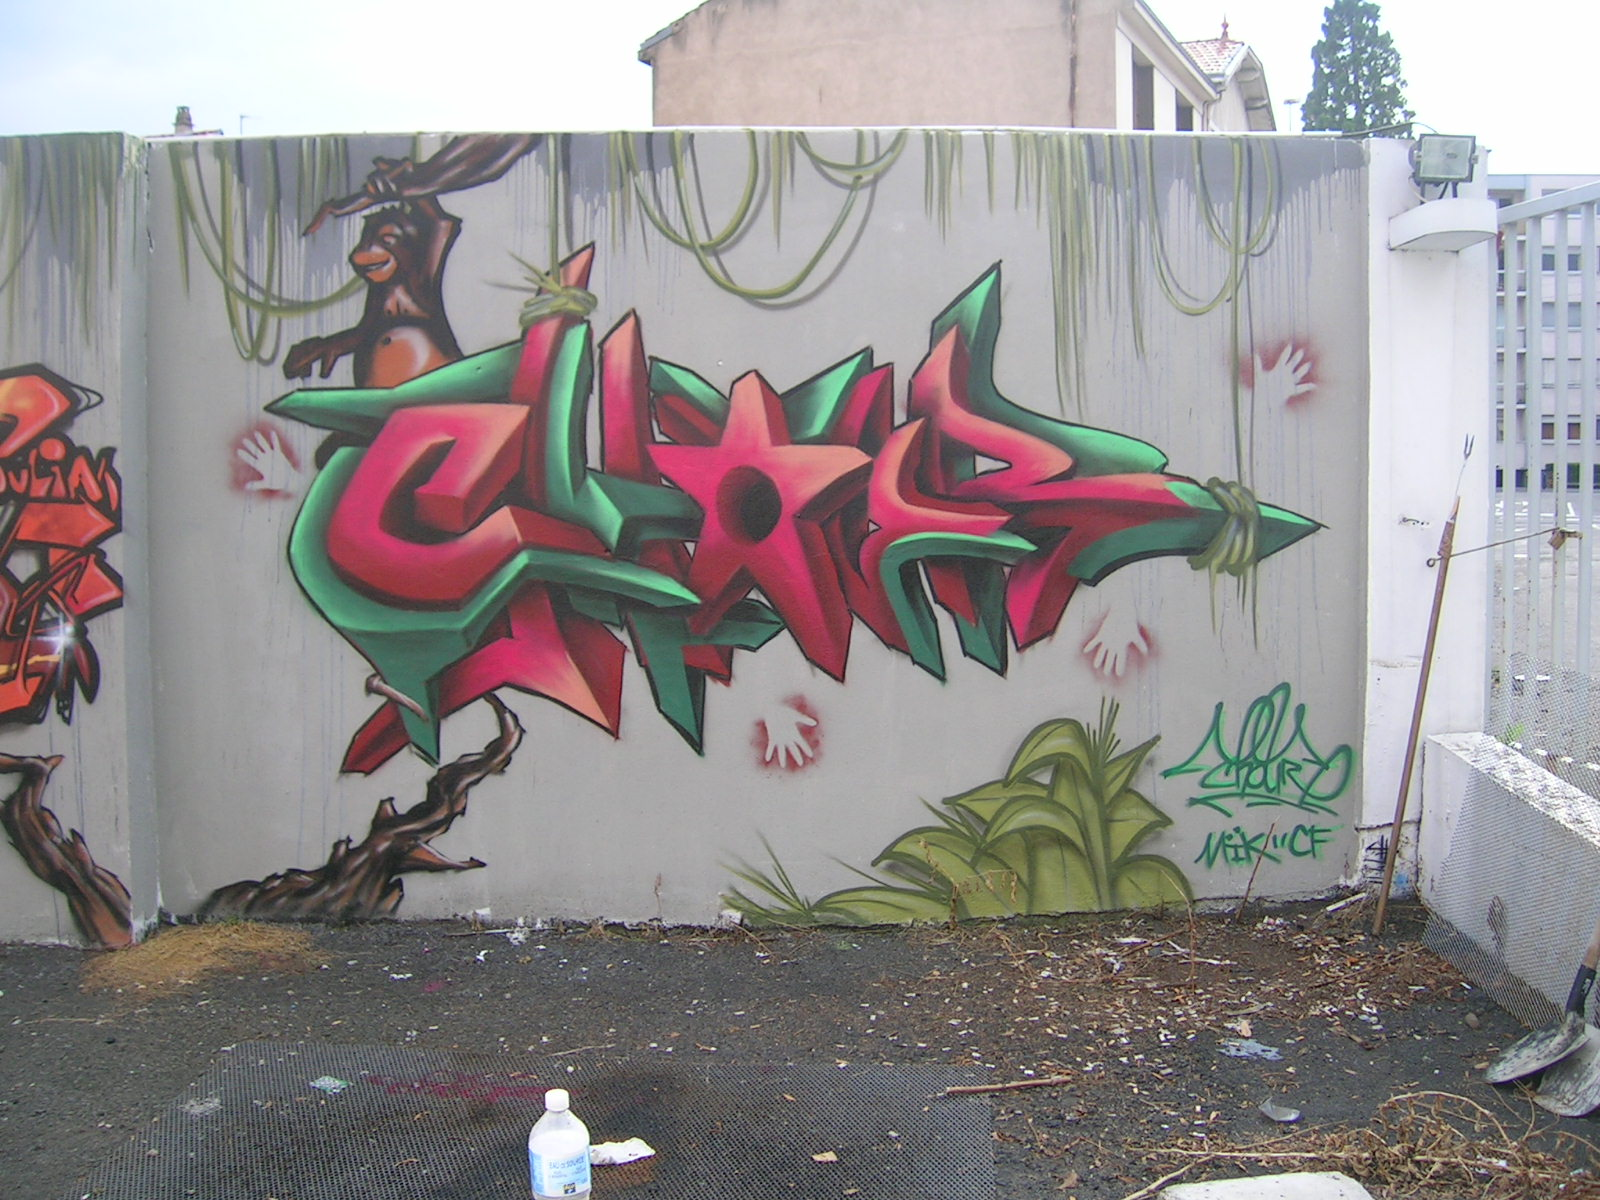 Chour2 - Fresque Jungle - Graffiti - Clermont-Ferrand